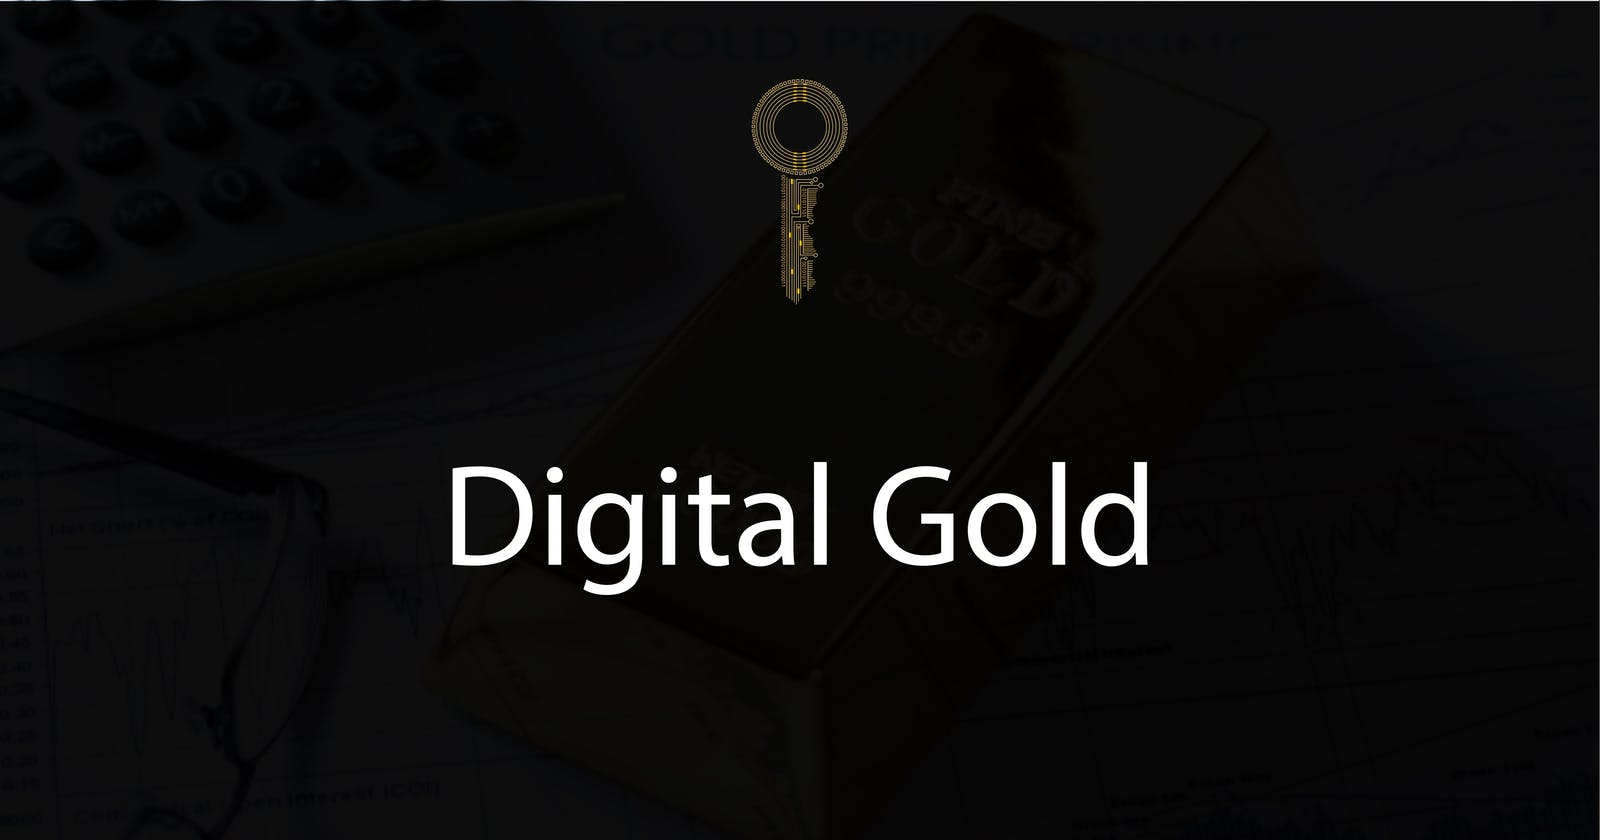 Making Digital Gold Coin As an Investment in the Digital World.